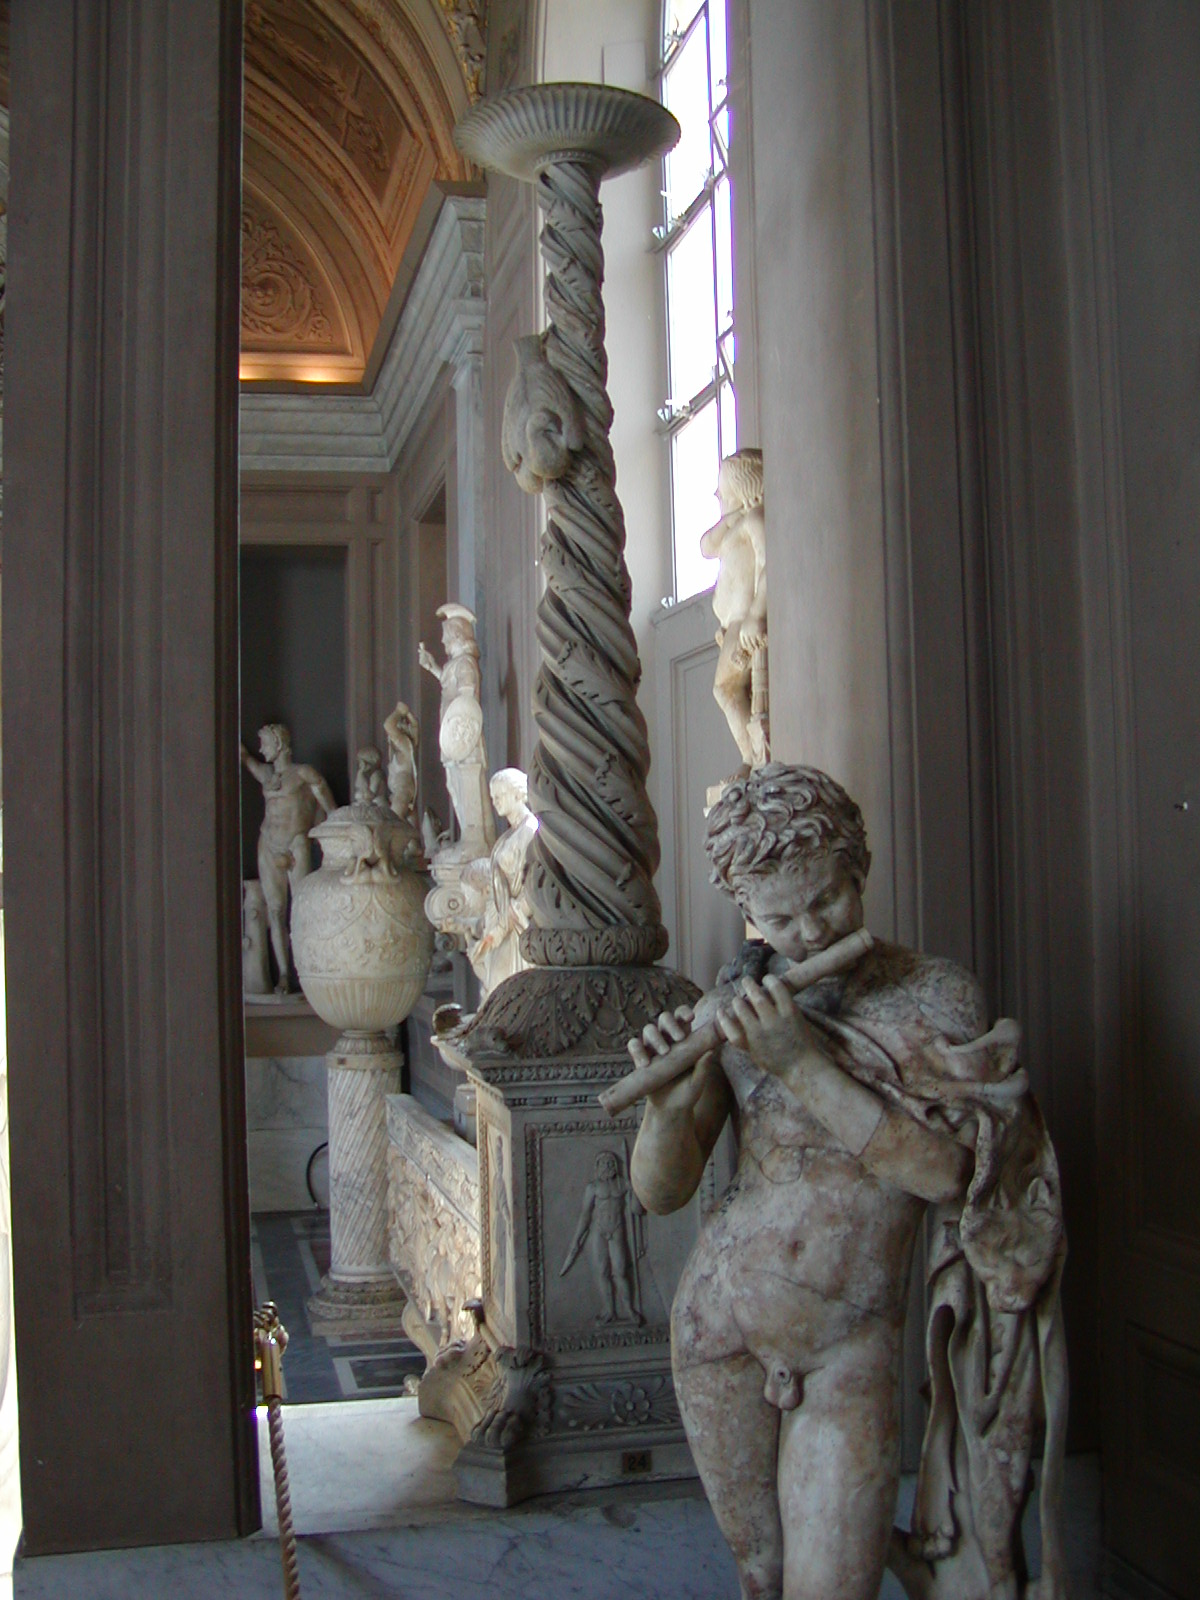 Gallery of the Candelabra - 2002-09-10-150616